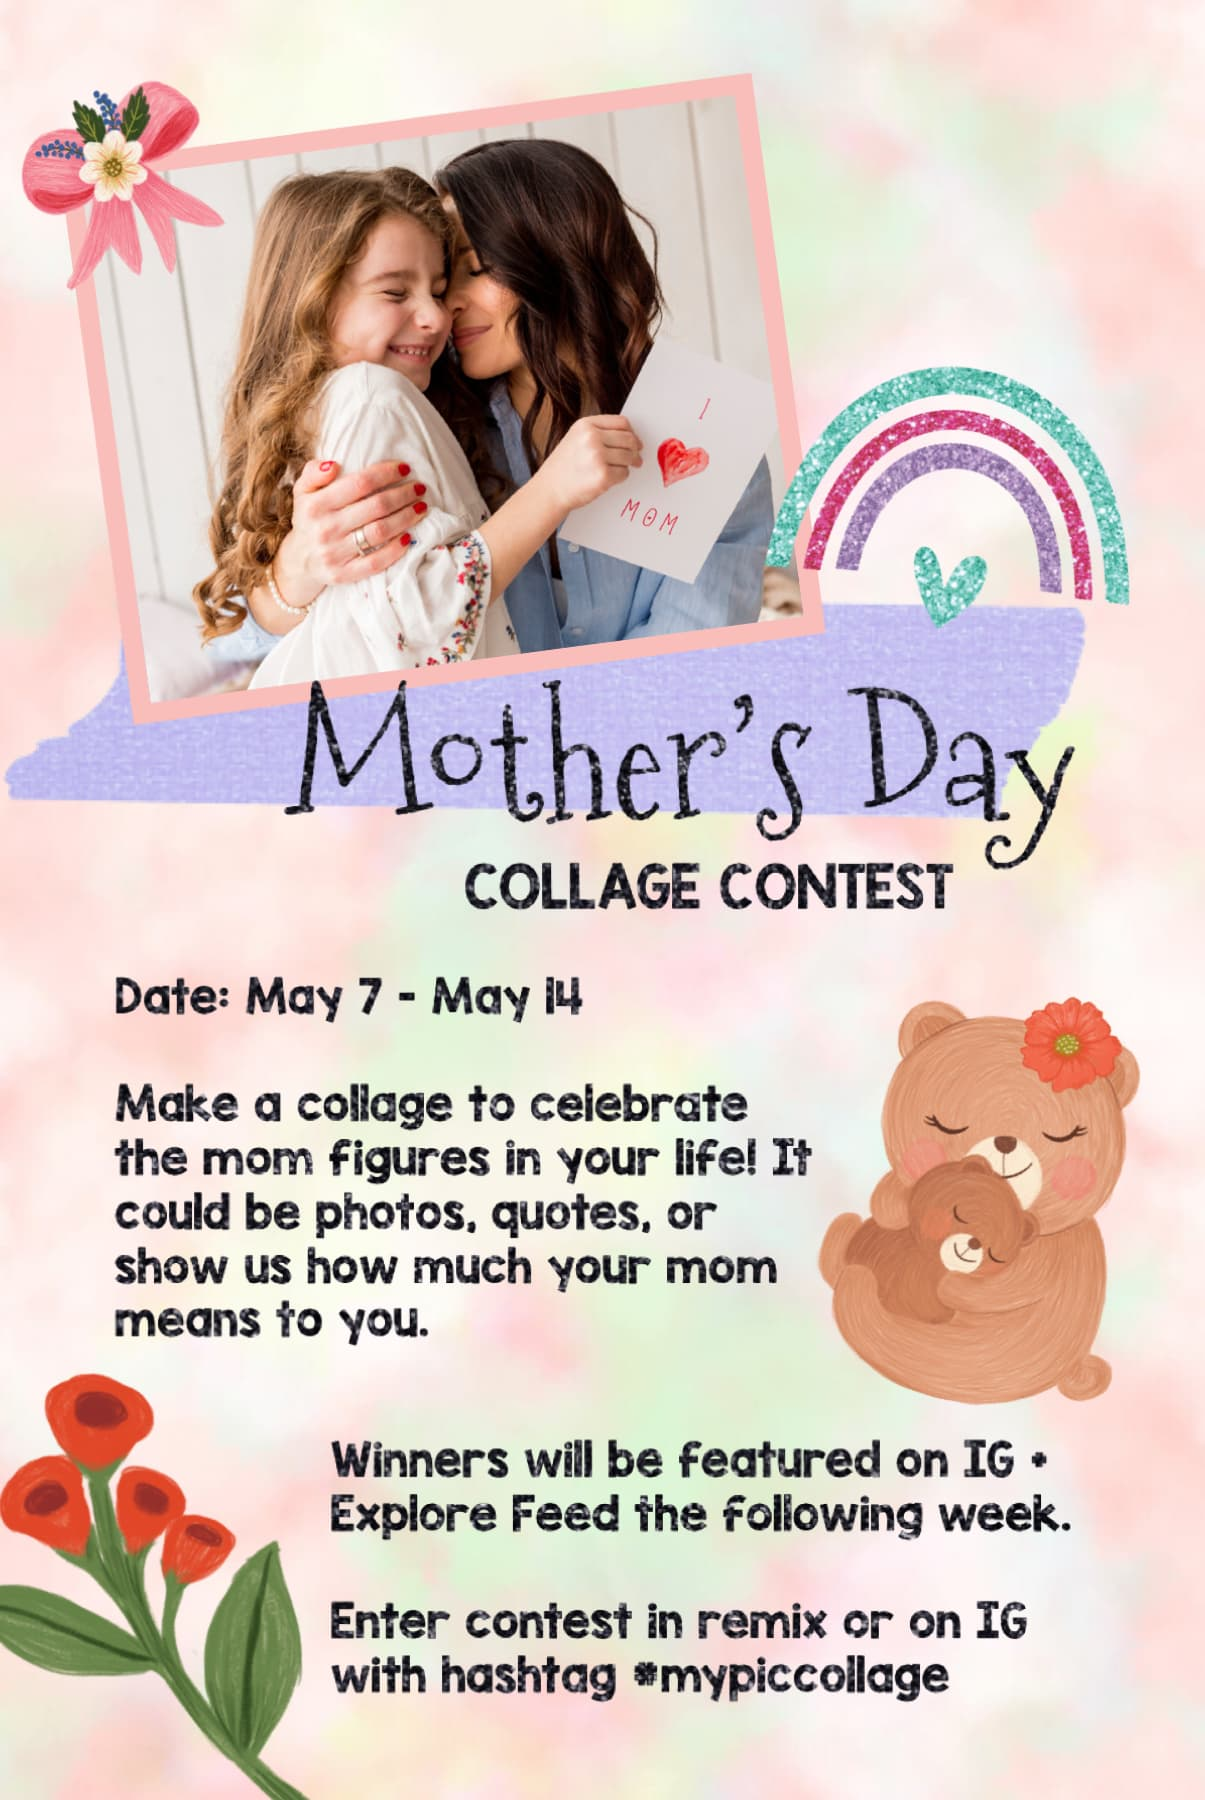 Mother's Day collage contest is live! 💖 Live through next Thursday 5/14!